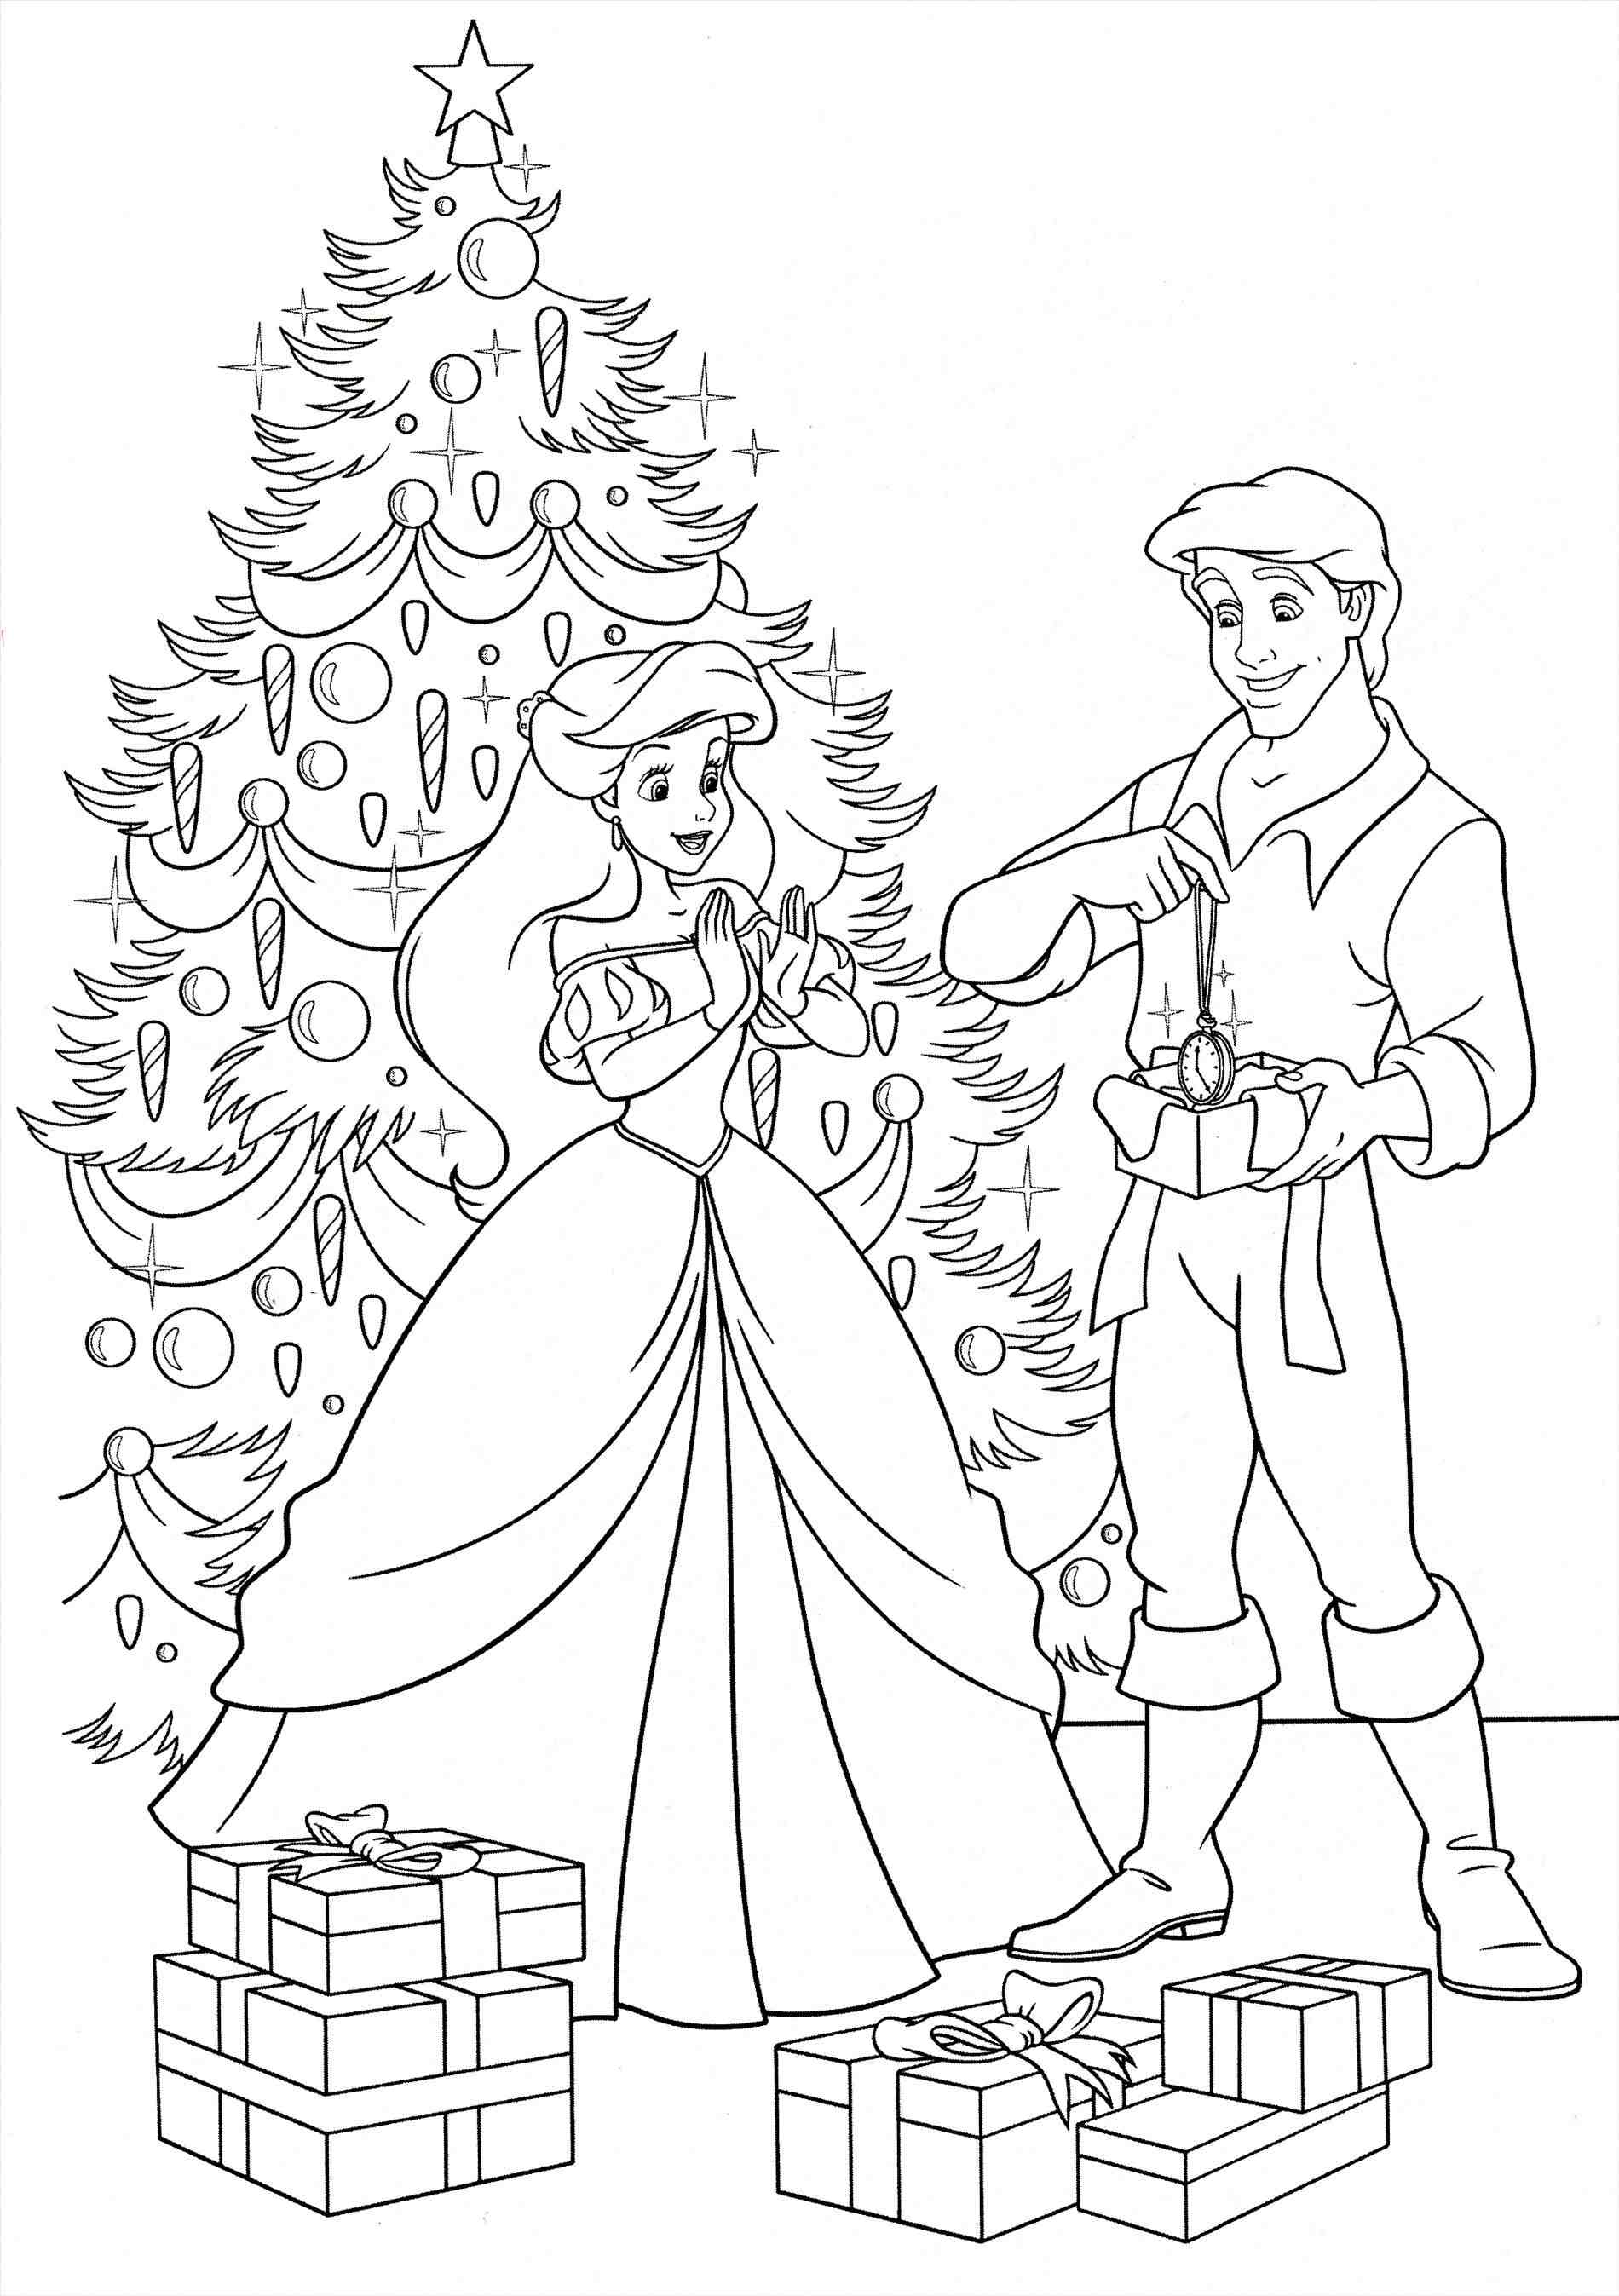 Free Printable Disney Princess Christmas Coloring Pages With New Collection